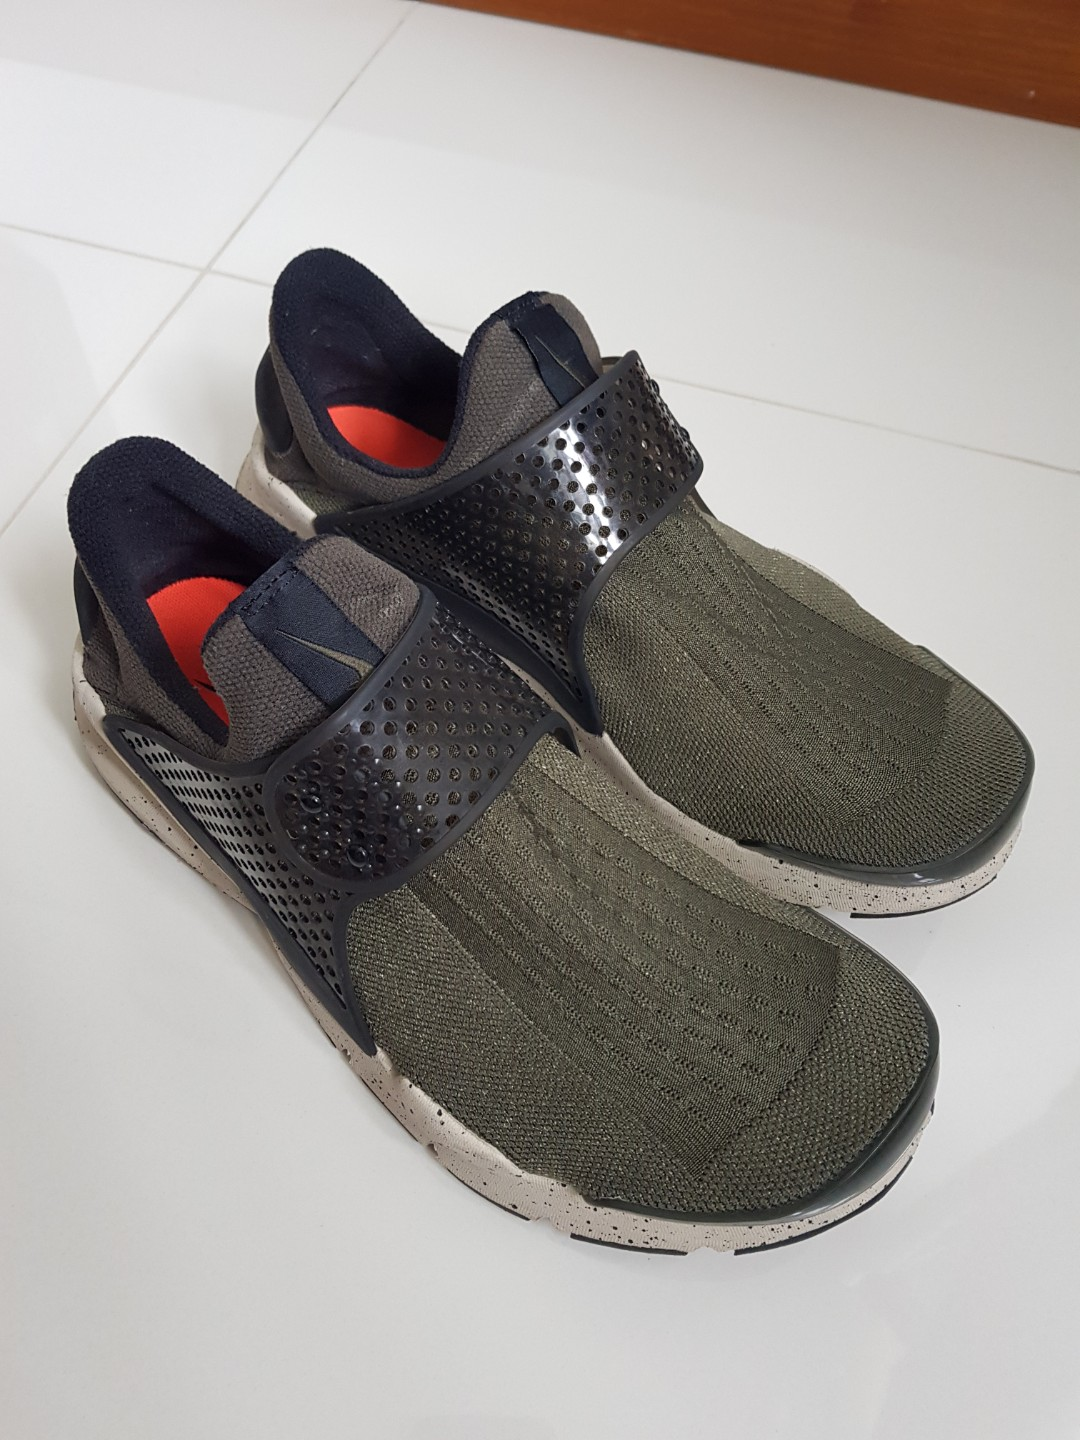 indice Presunto Lacrima  Nike Sock Dart, Men's Fashion, Footwear on Carousell